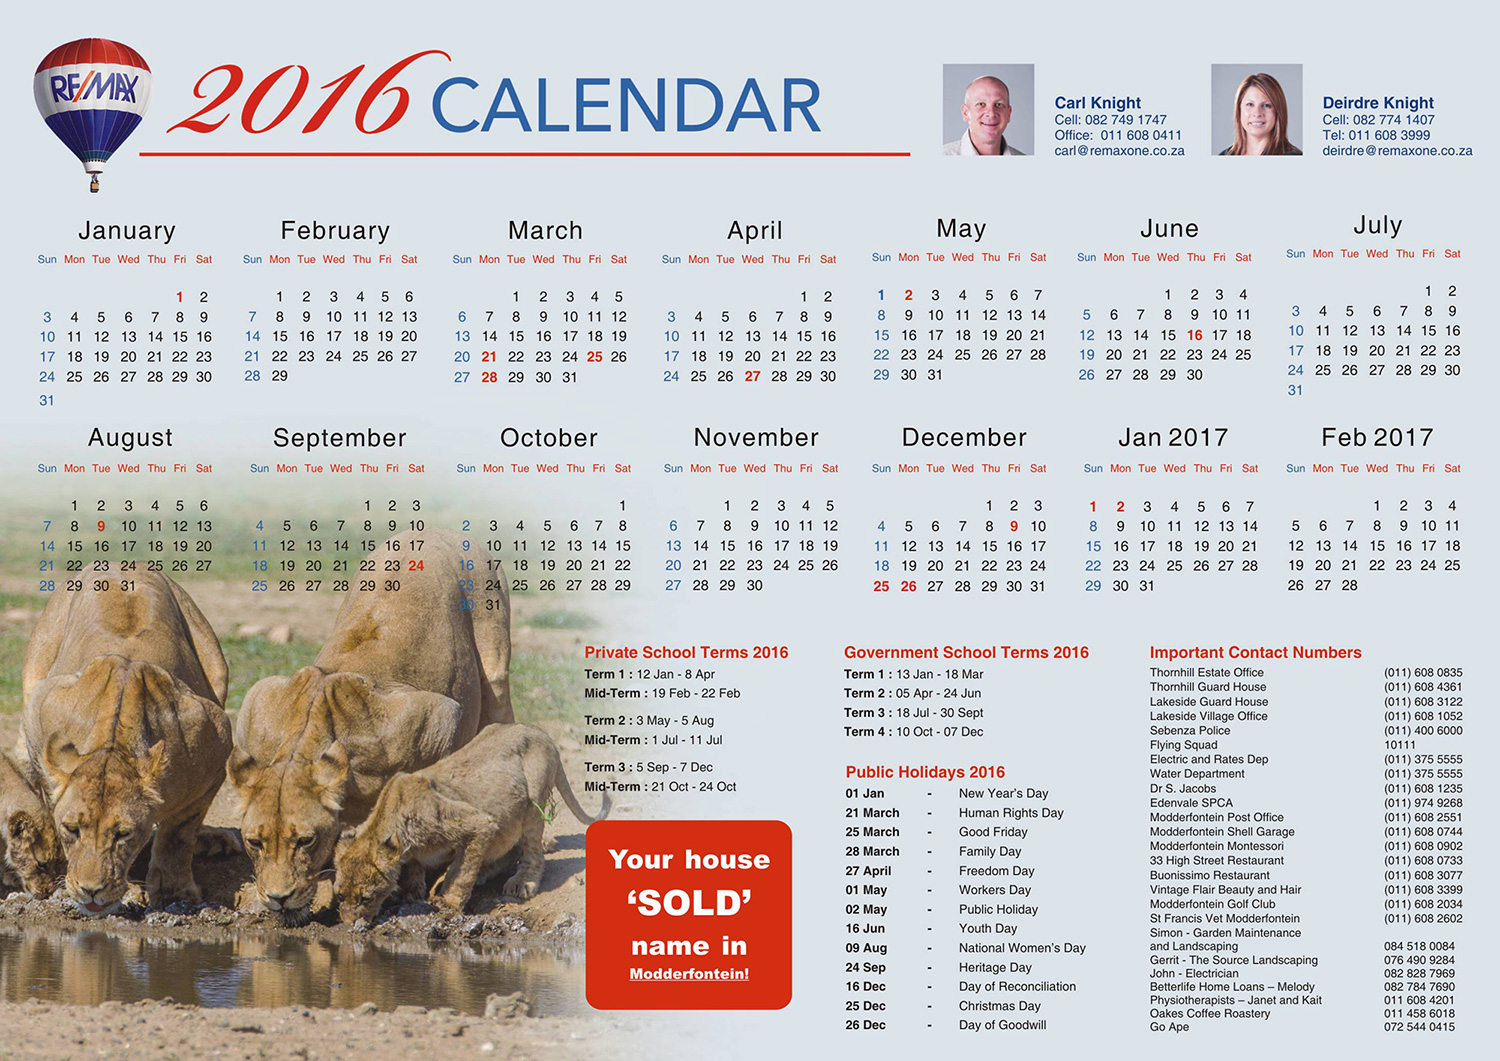 Crafford Productions Design Calendar for Remax